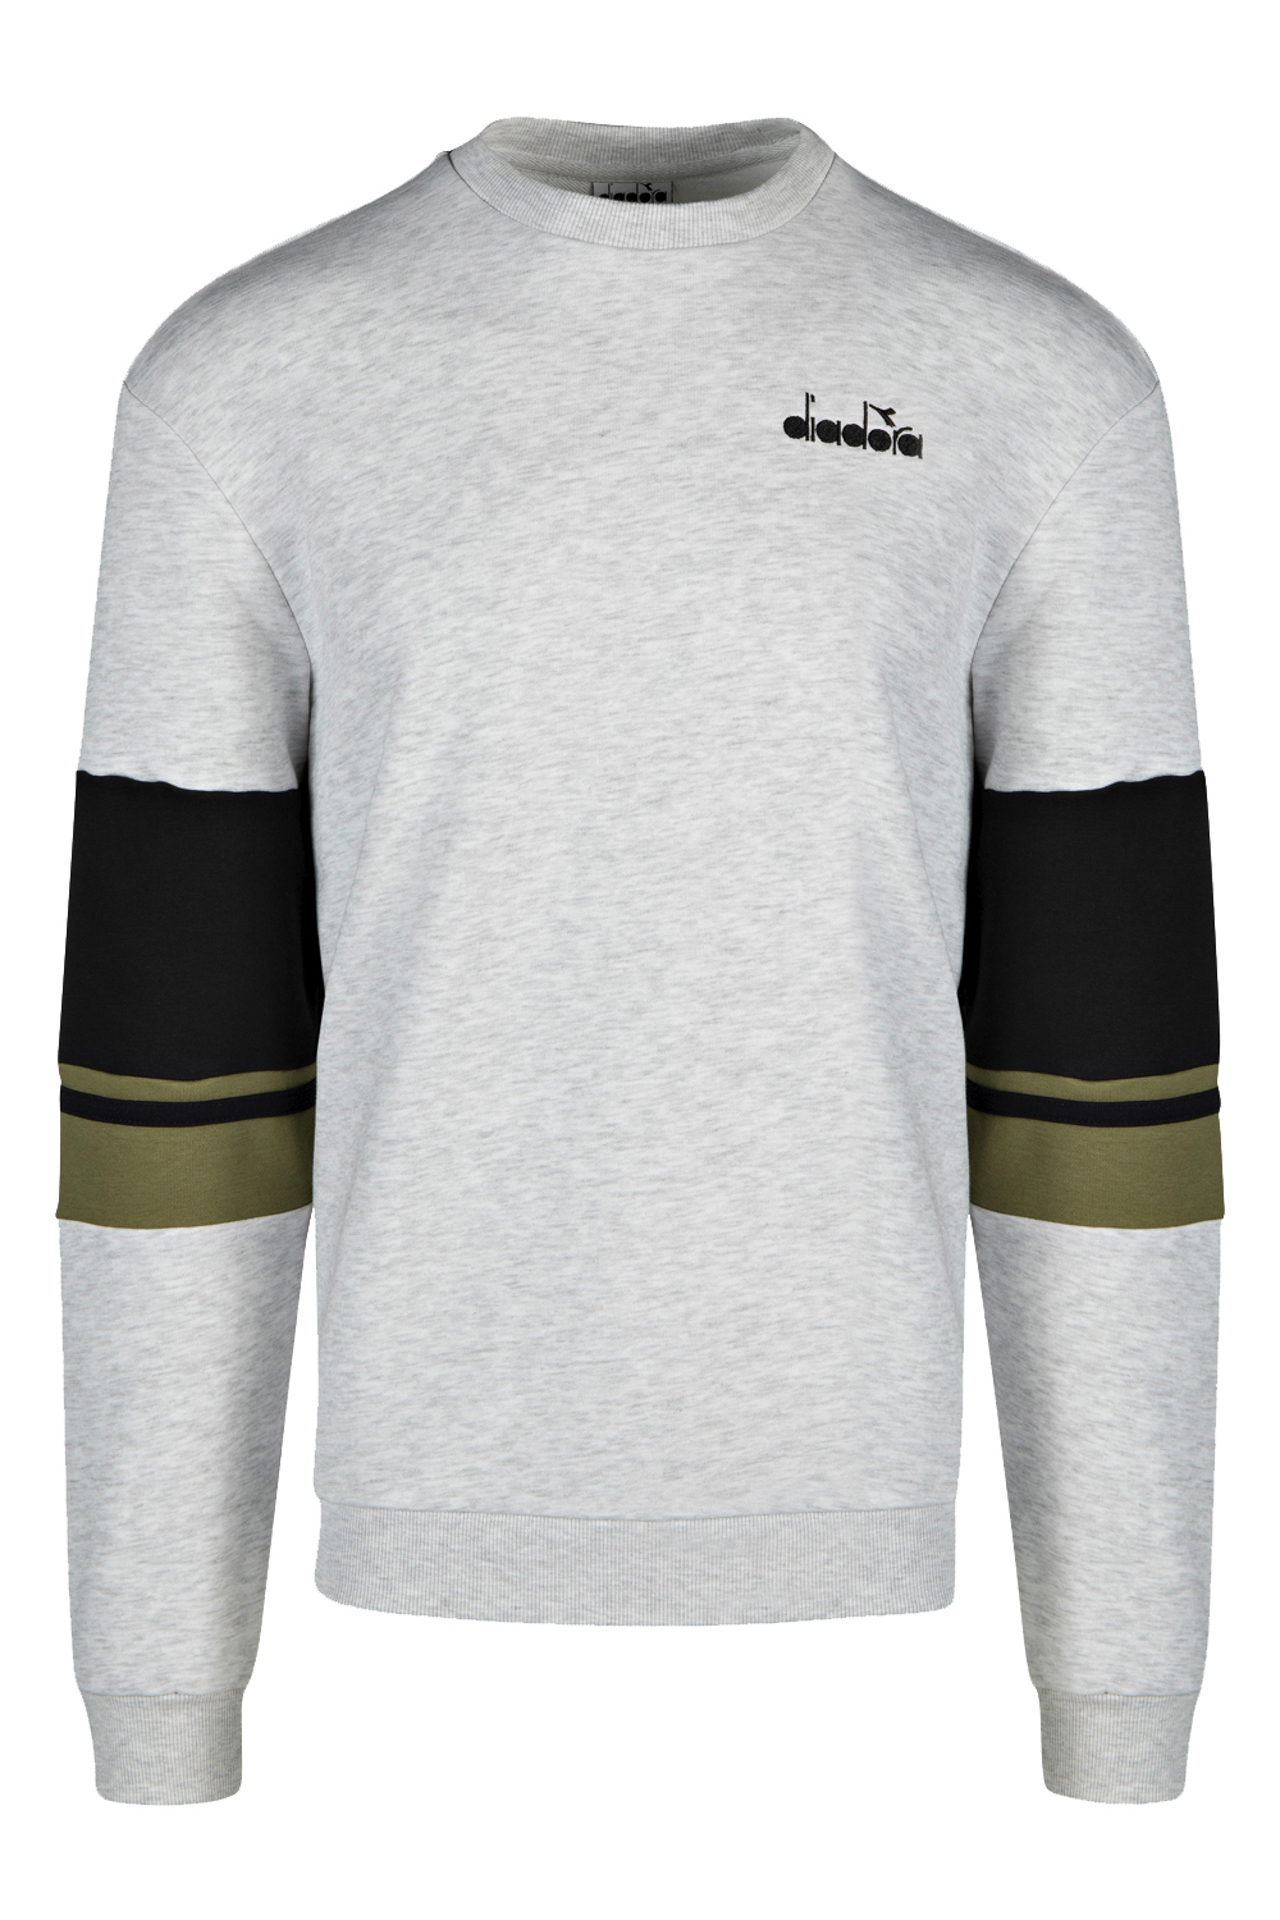 Diadora - CREWNECK SWEAT LOGO